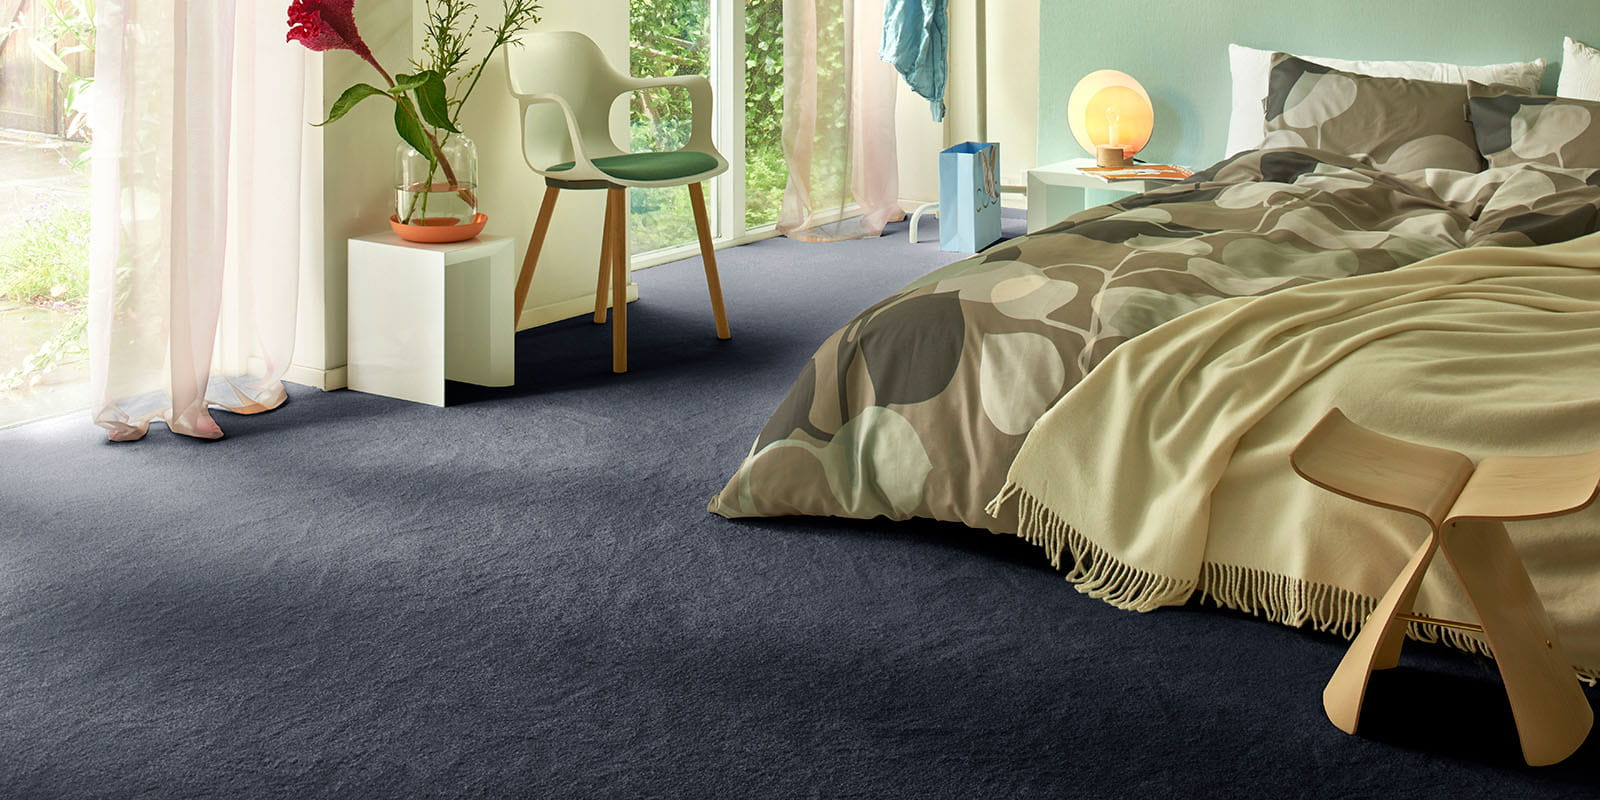 Sedna® Carpet - Kai 79 - Bed